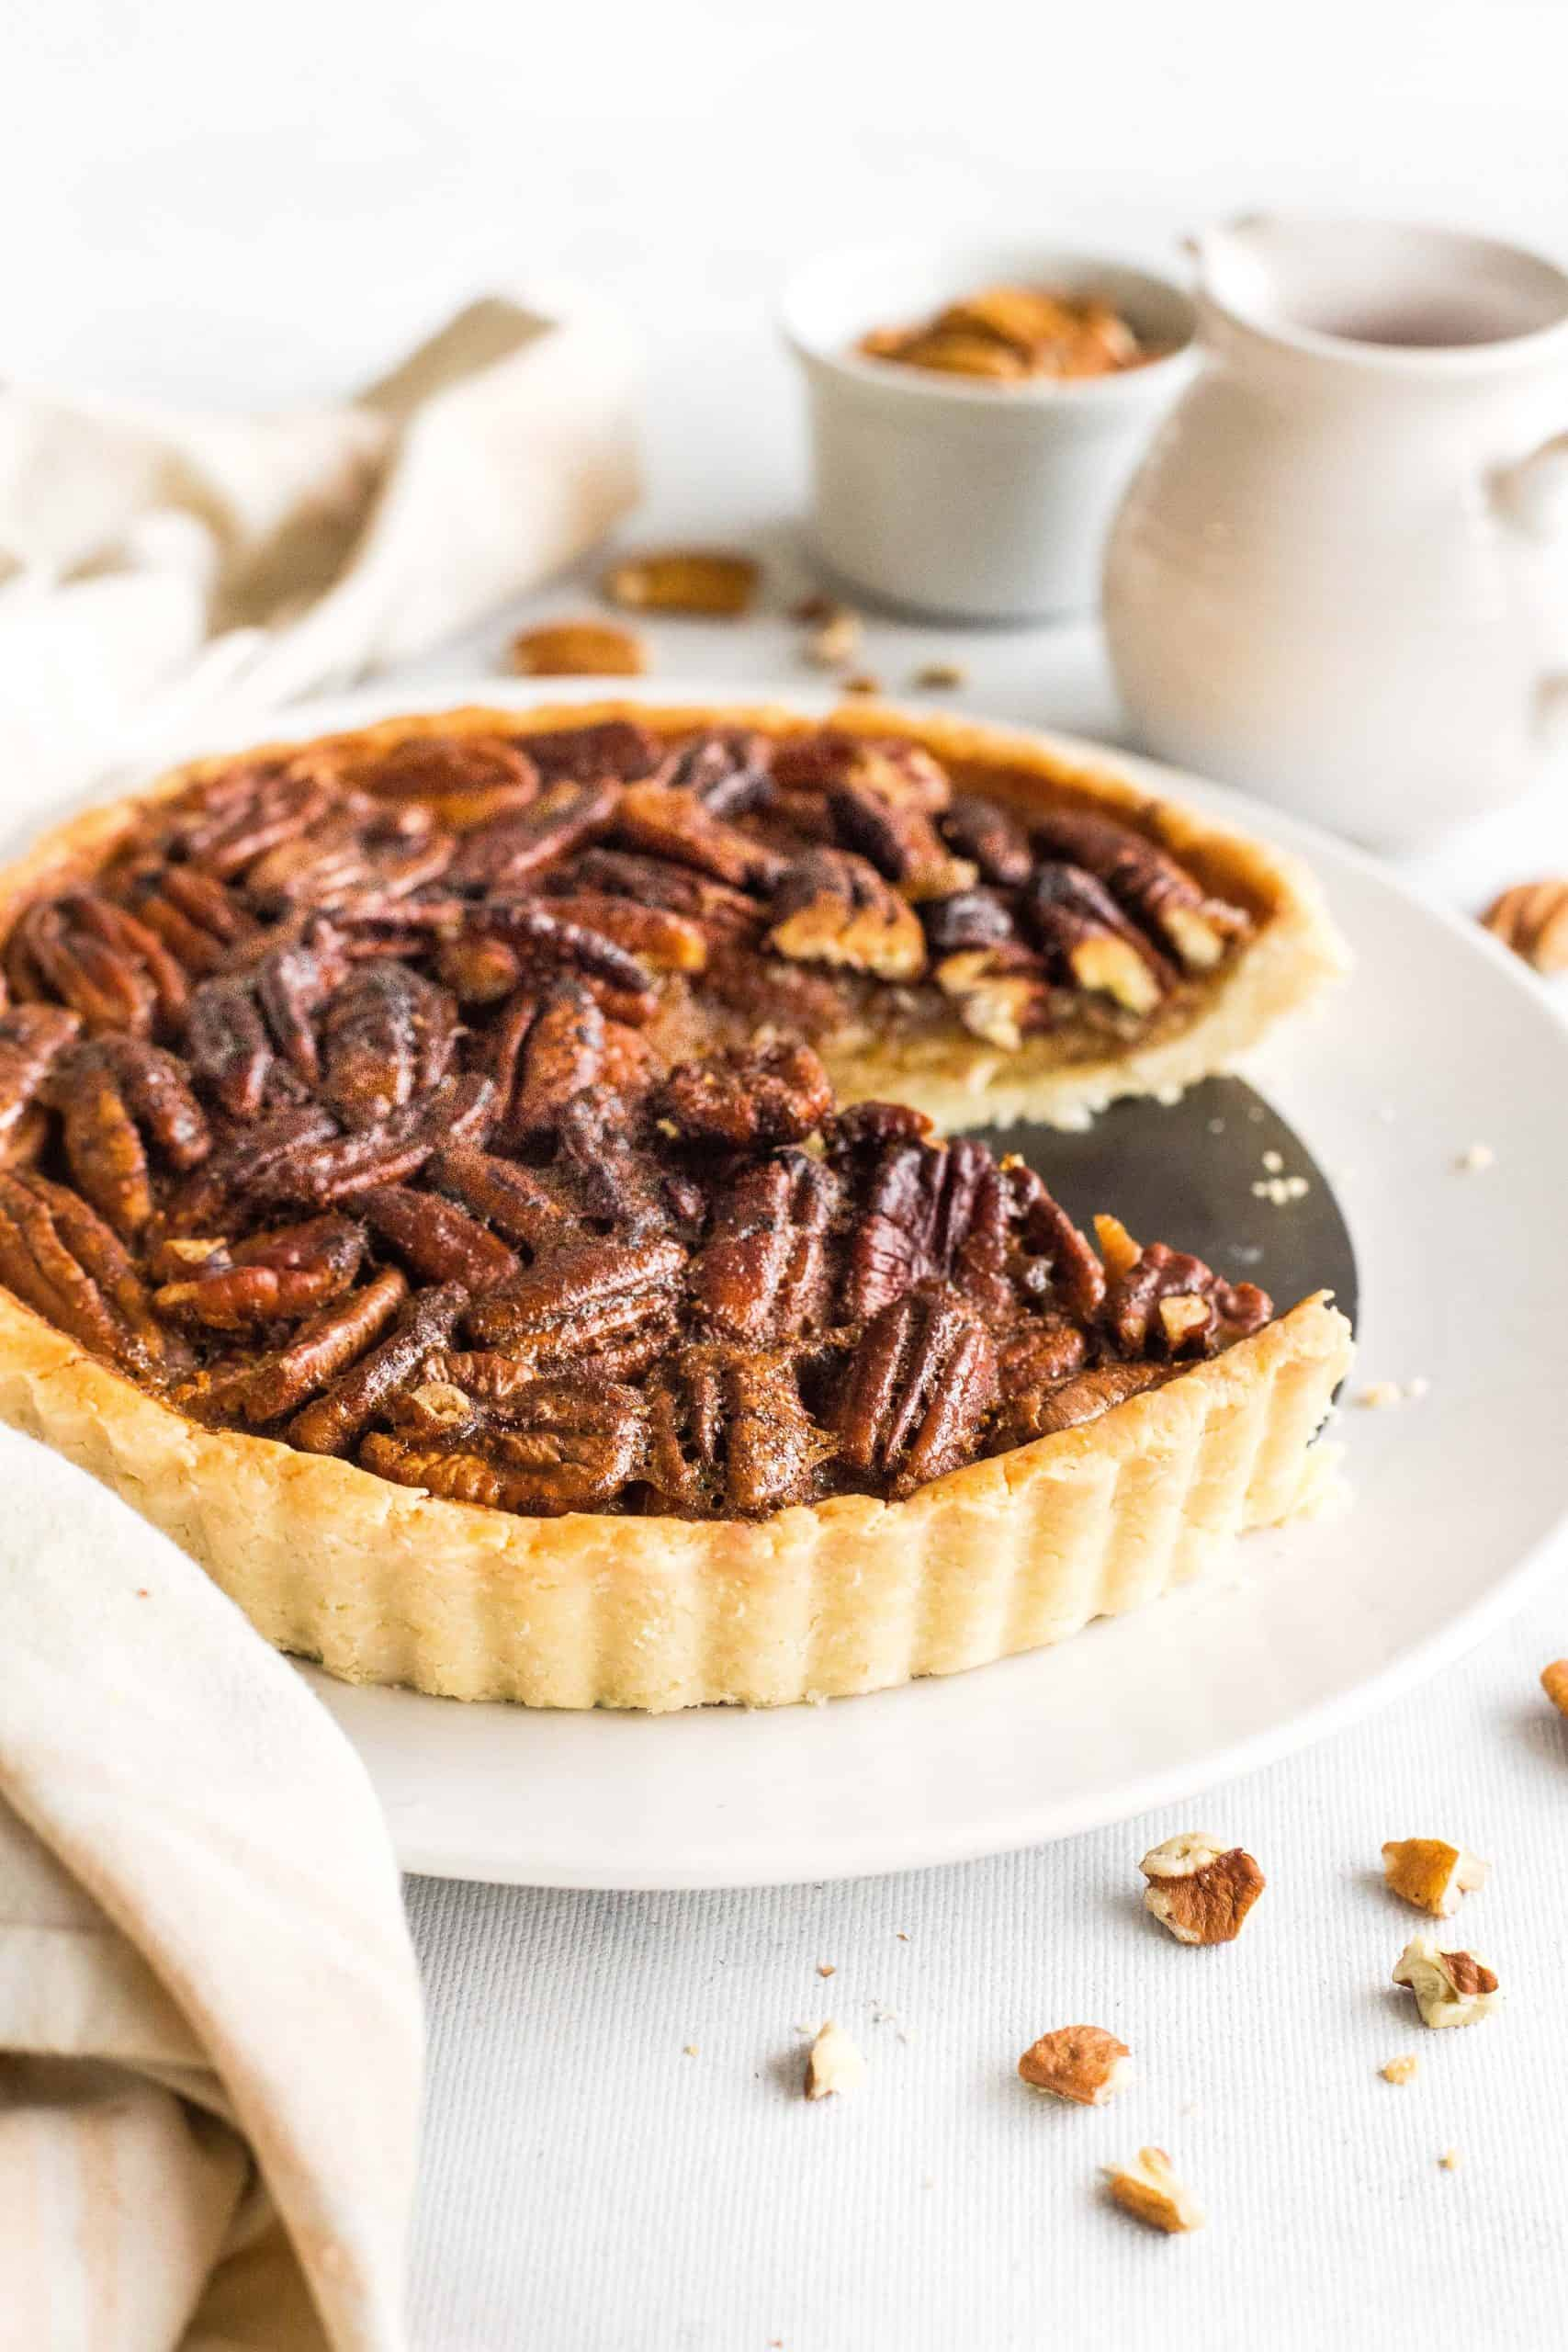 Sliced pecan pie on a white plate.